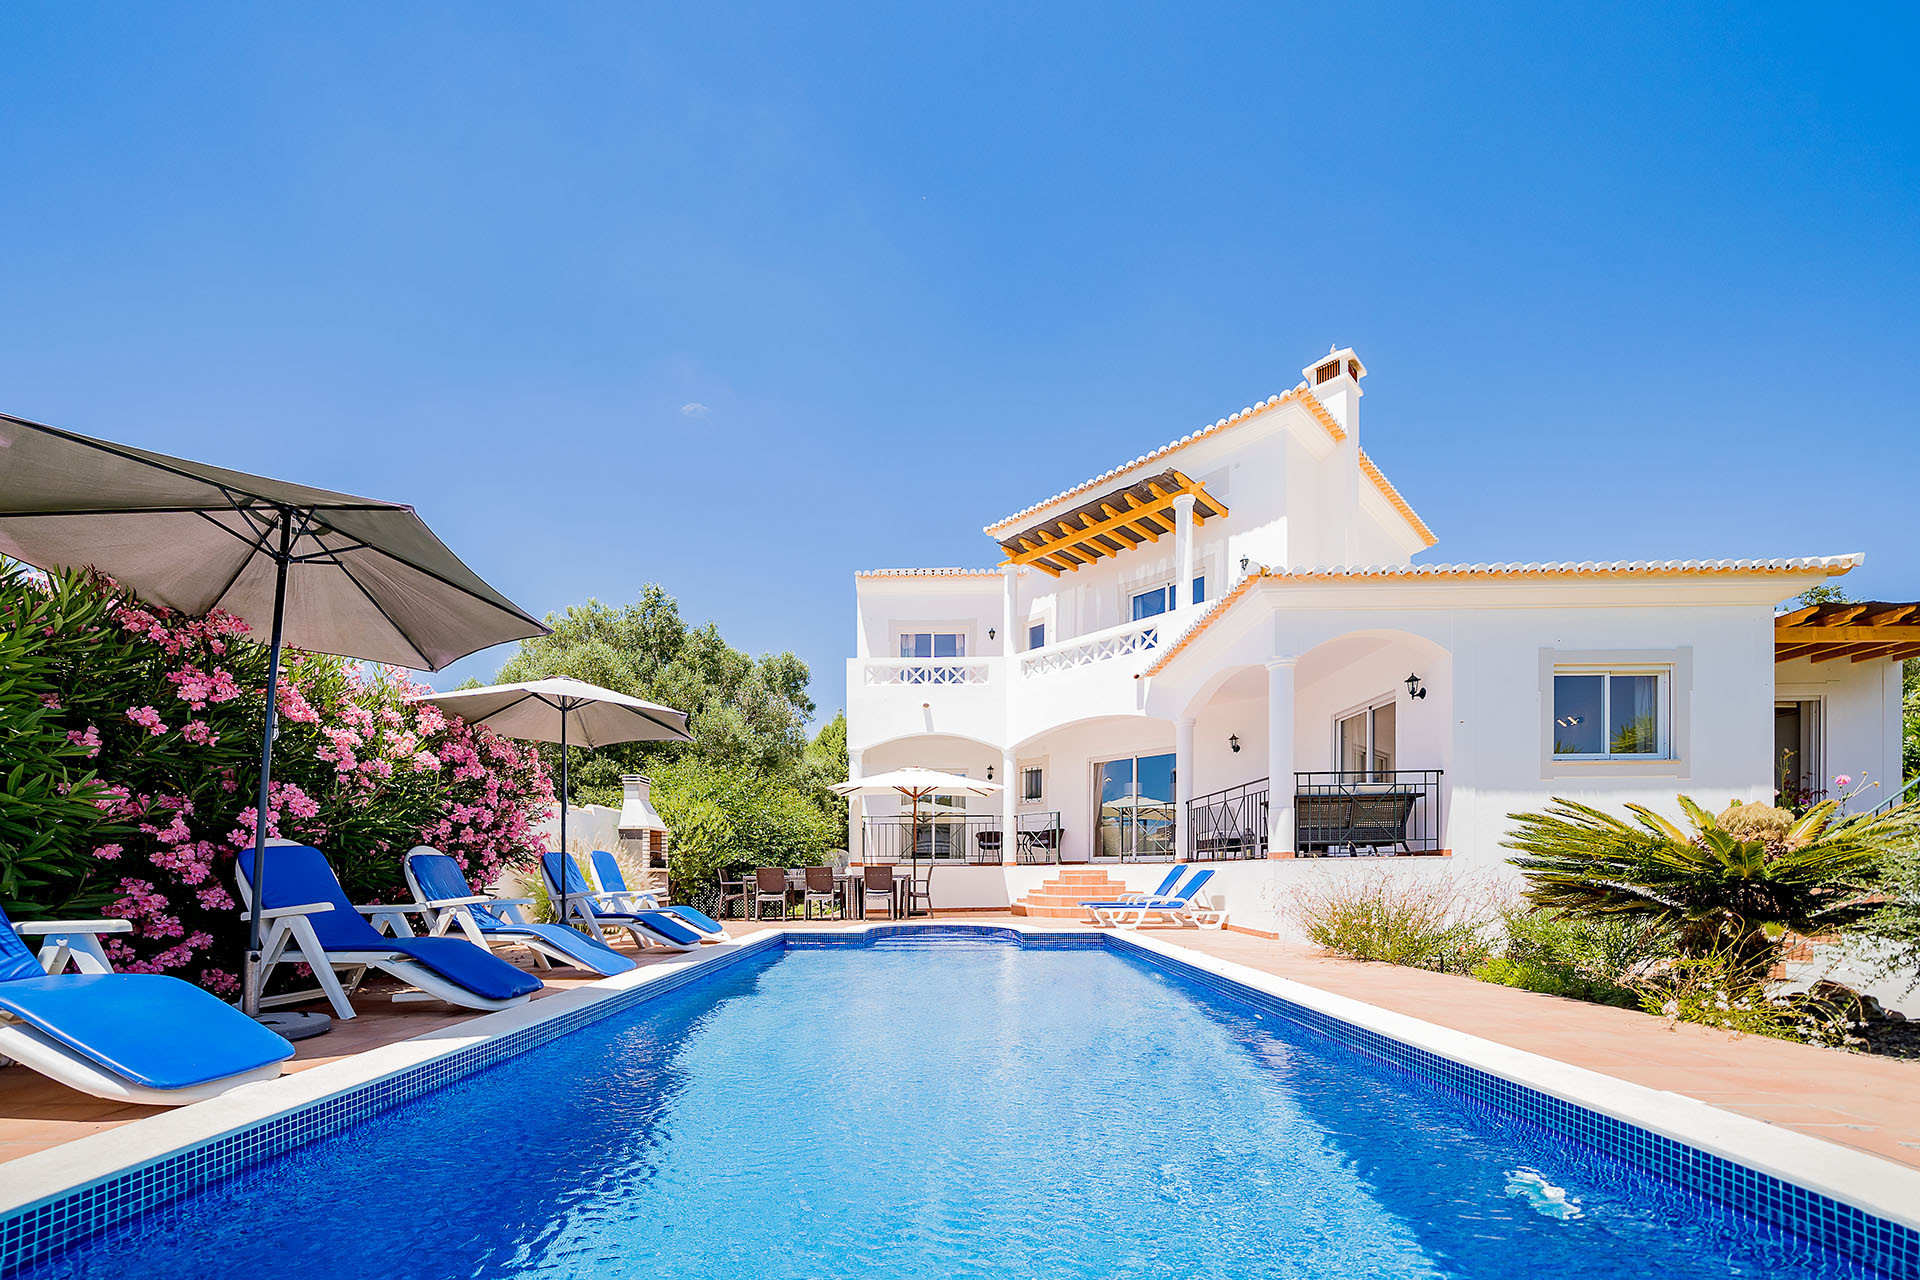 Villa/Dettached house in Luz - Villa with free Wi-Fi | A/C | private pool | garden [RLUZ20]